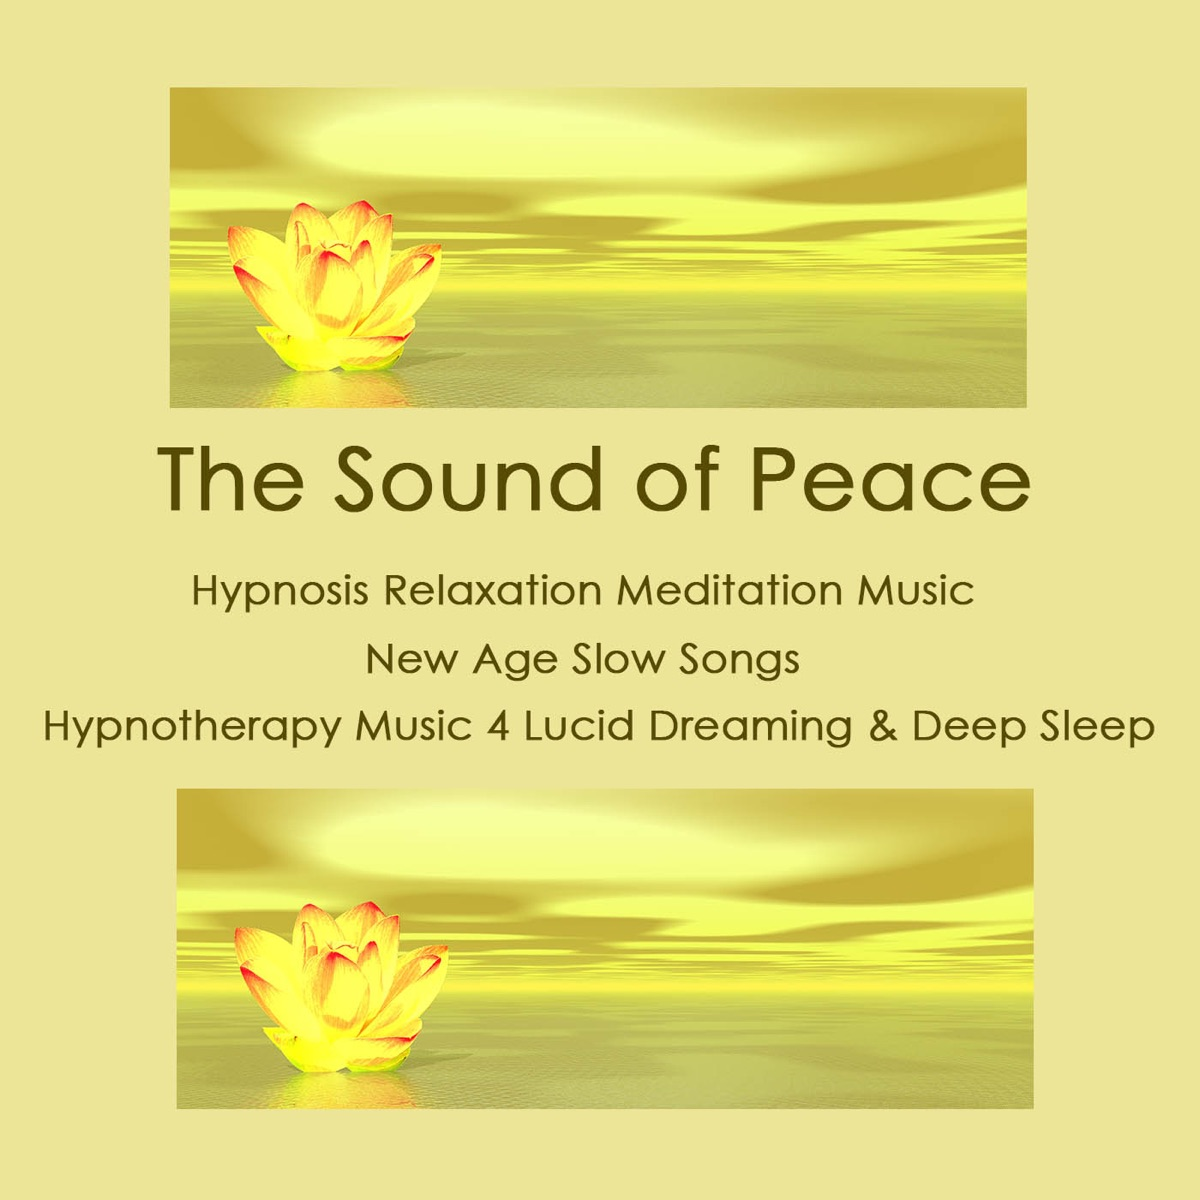 The Sound of Peace: Hypnosis Relaxation Meditation Music